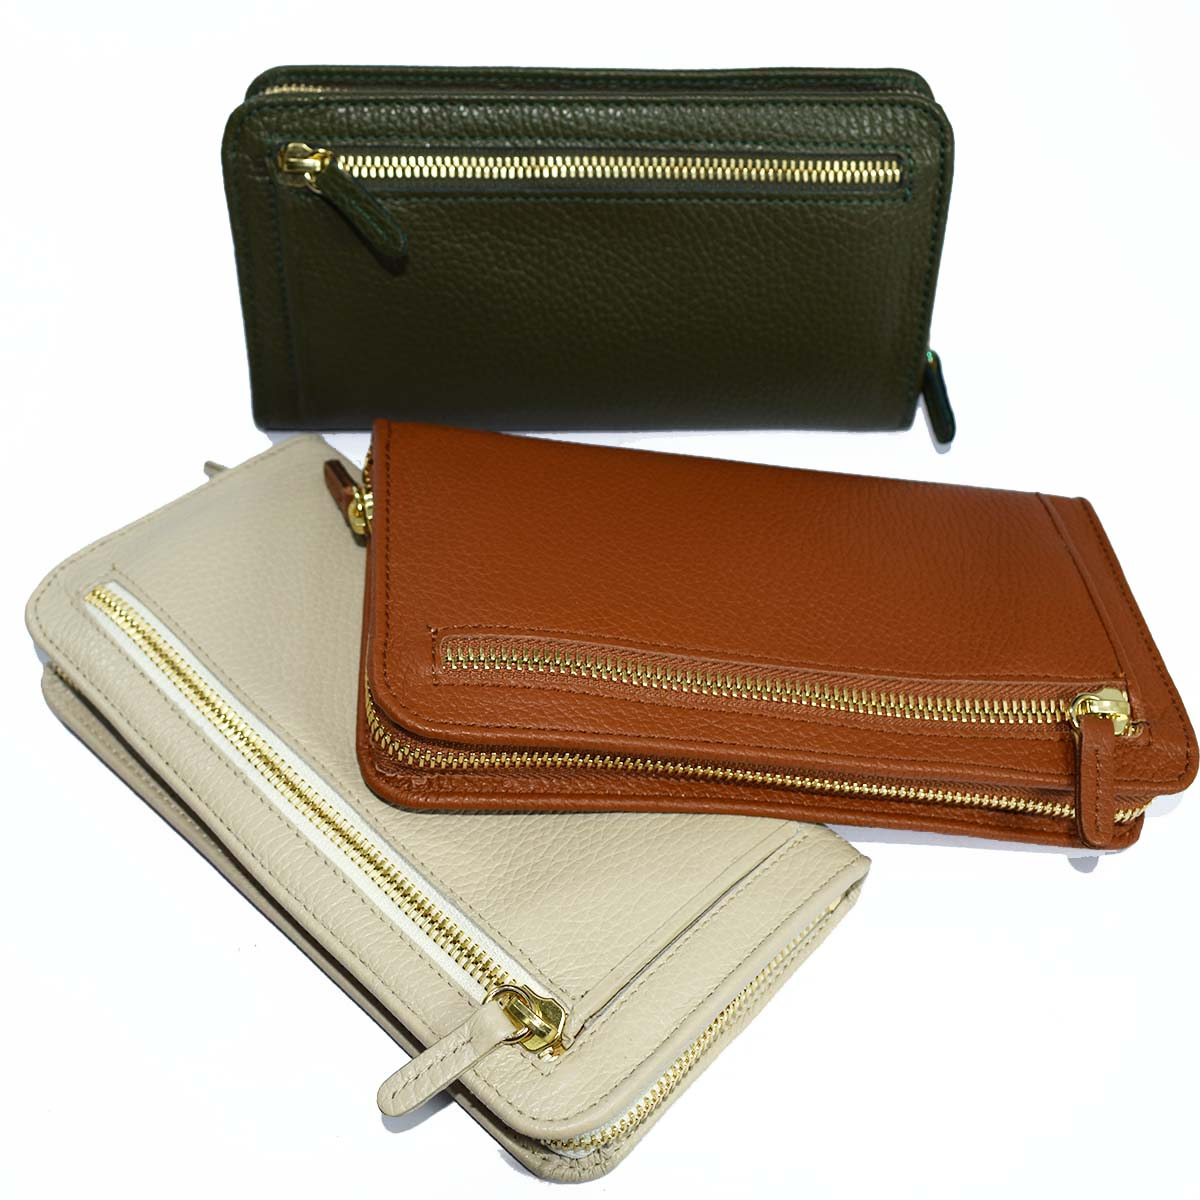 1688 ZIP AROUND WALLET by Bottega Fiorentina